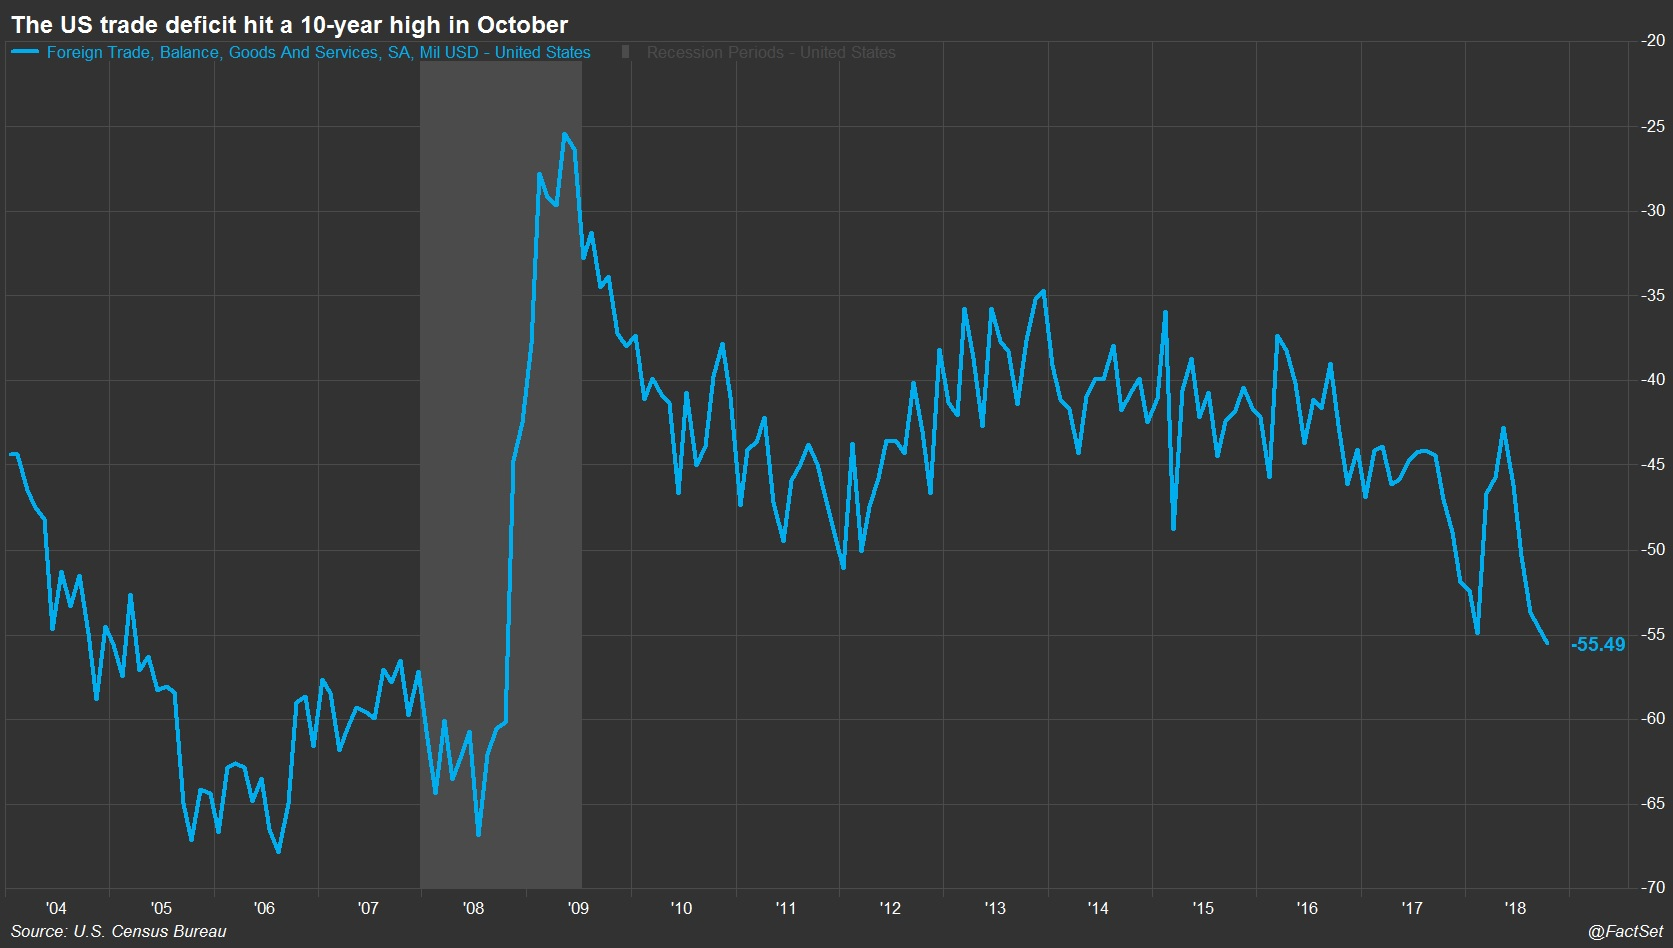 The US trade deficit hit a 10 year high in October